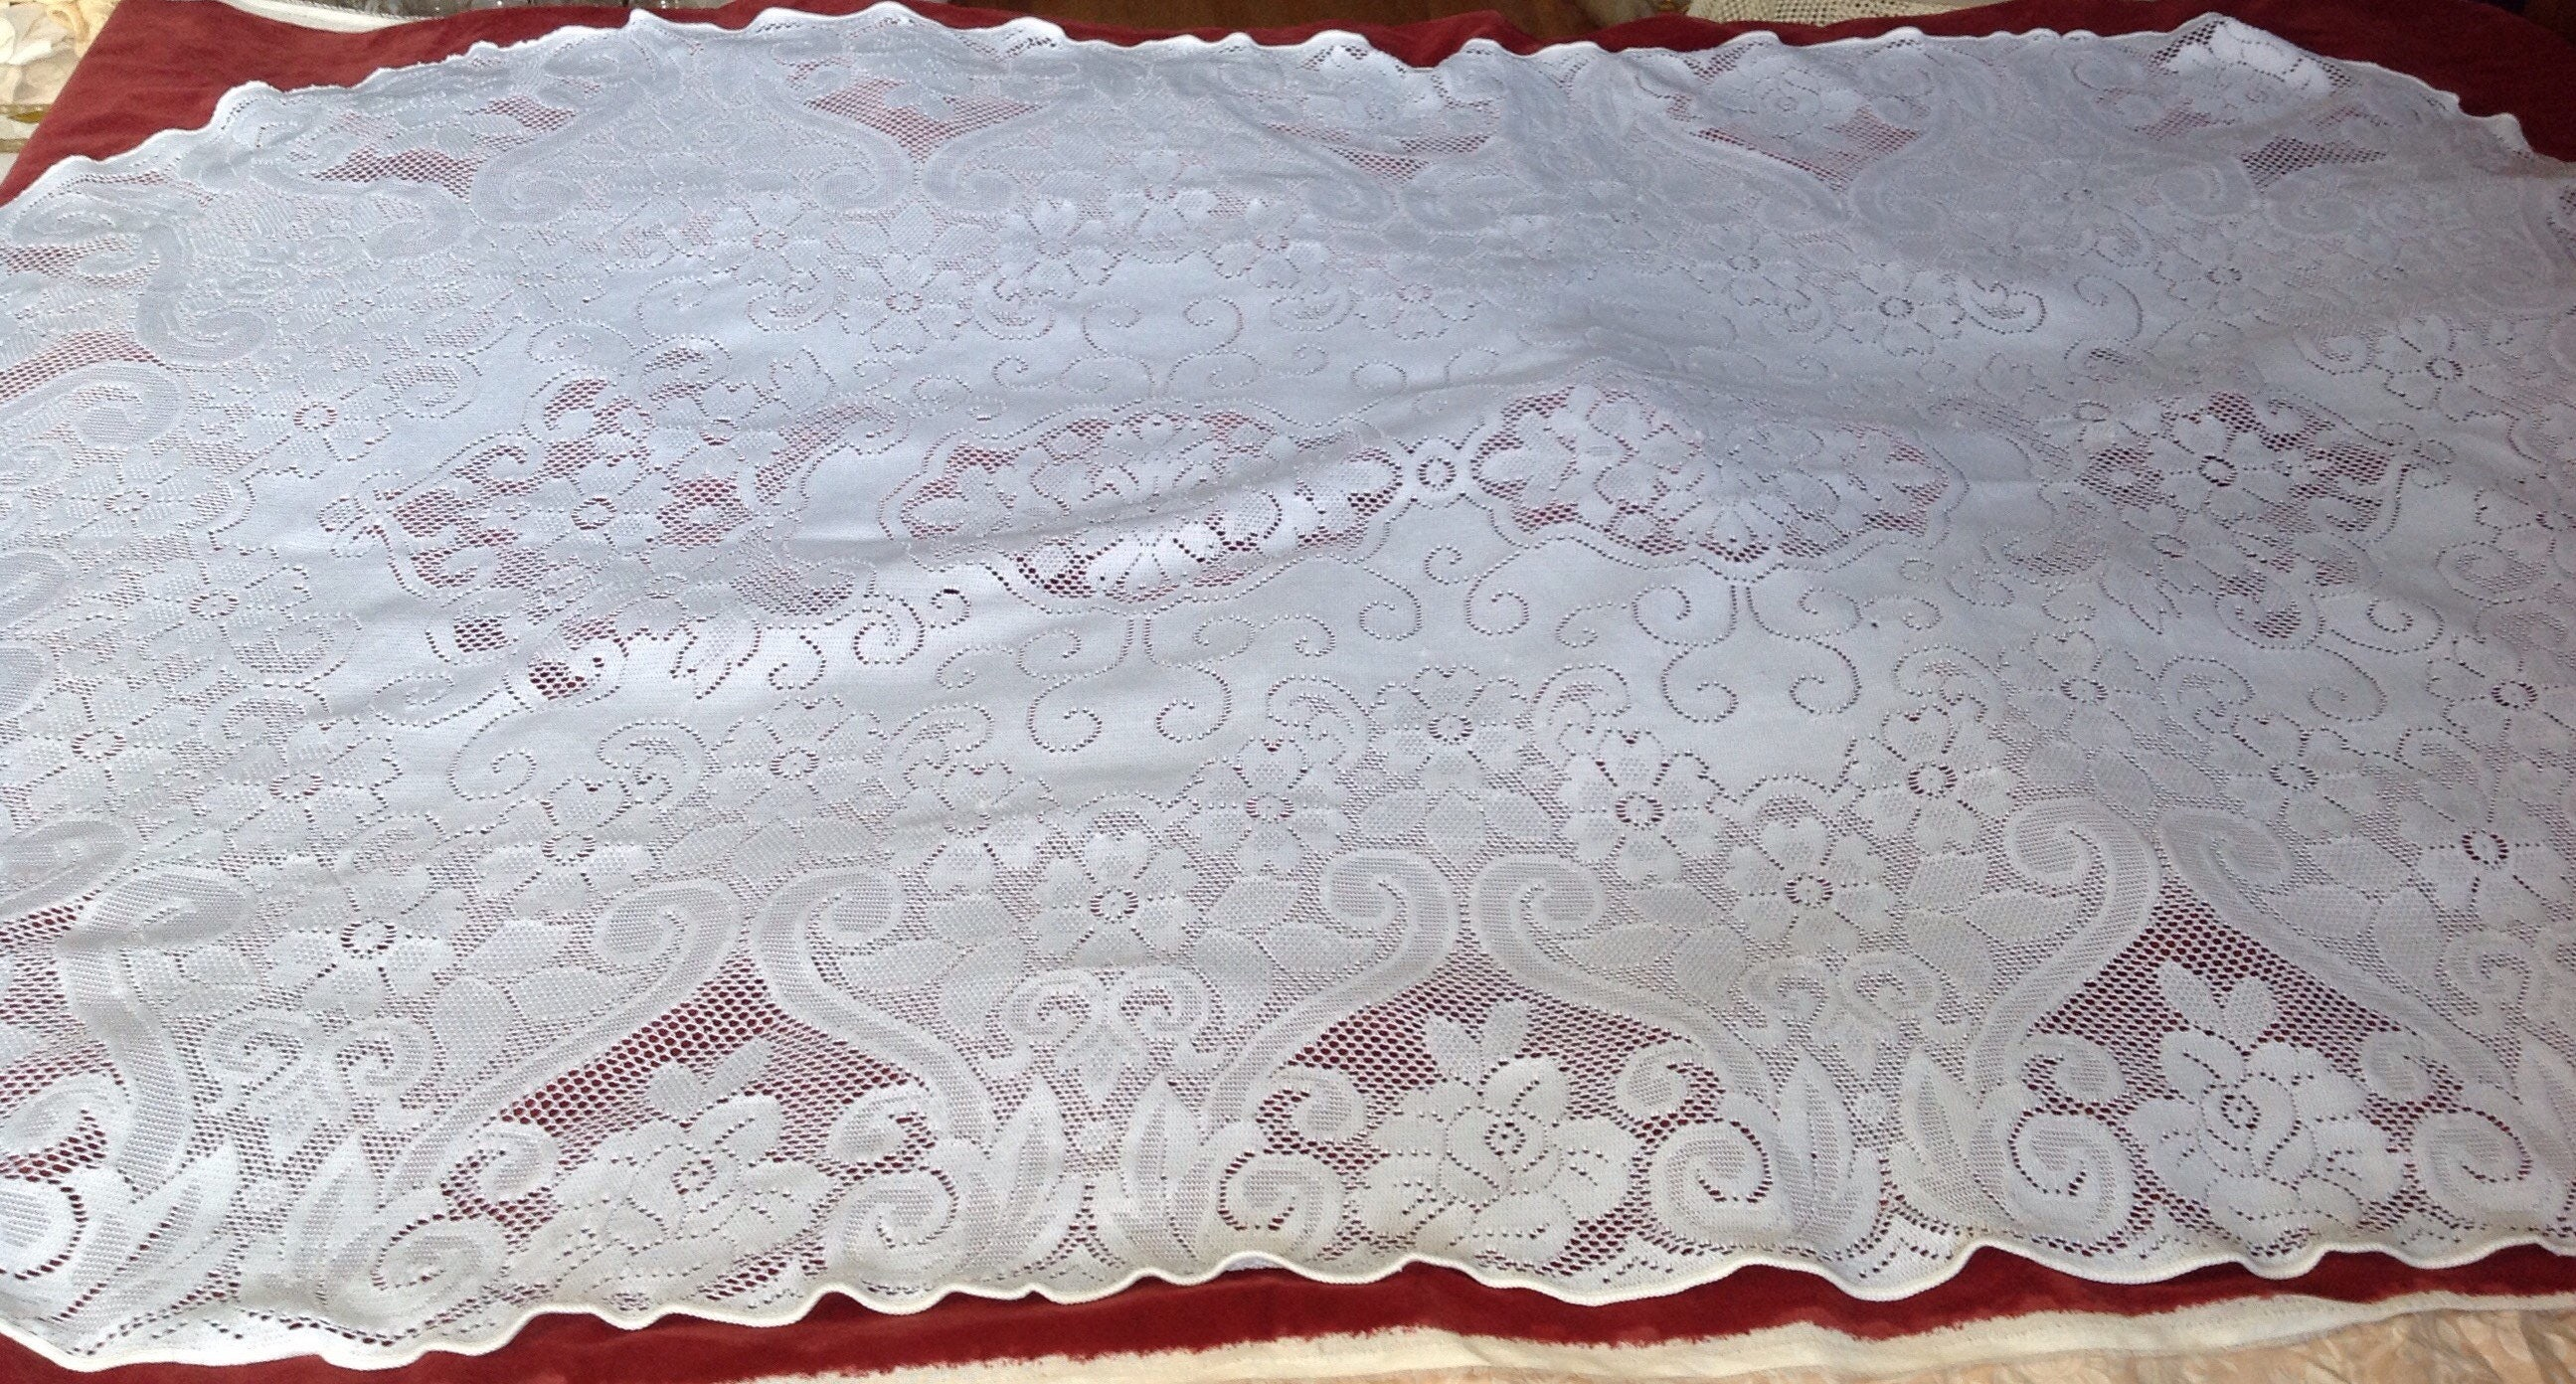 Lace Tablecloths Oval 300x300.jpg 🔎zoom